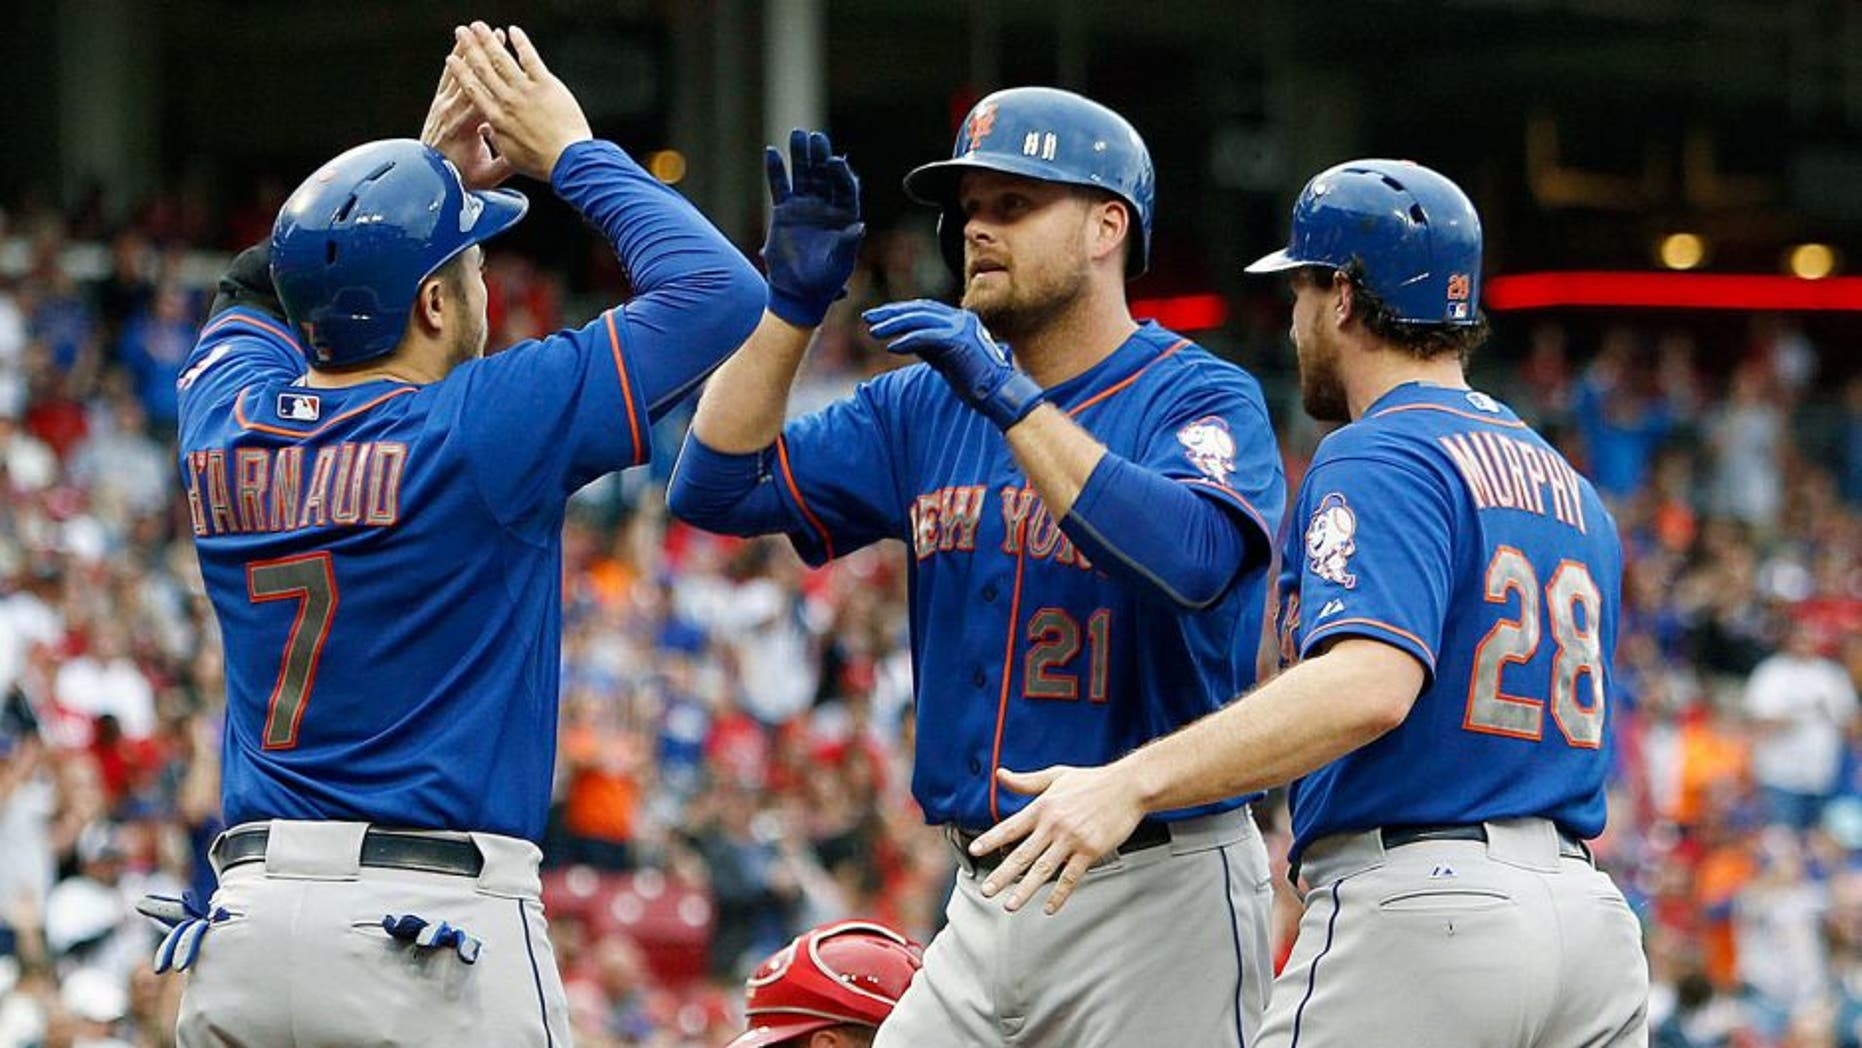 Sep 26, 2015; Cincinnati, OH, USA; New York Mets first baseman Lucas Duda (21) is congratulated by catcher Travis d'Arnaud (7) and second baseman Daniel Murphy (28) after Duda hit a grand slam against the Cincinnati Reds in the first inning at Great American Ball Park. Mandatory Credit: David Kohl-USA TODAY Sports